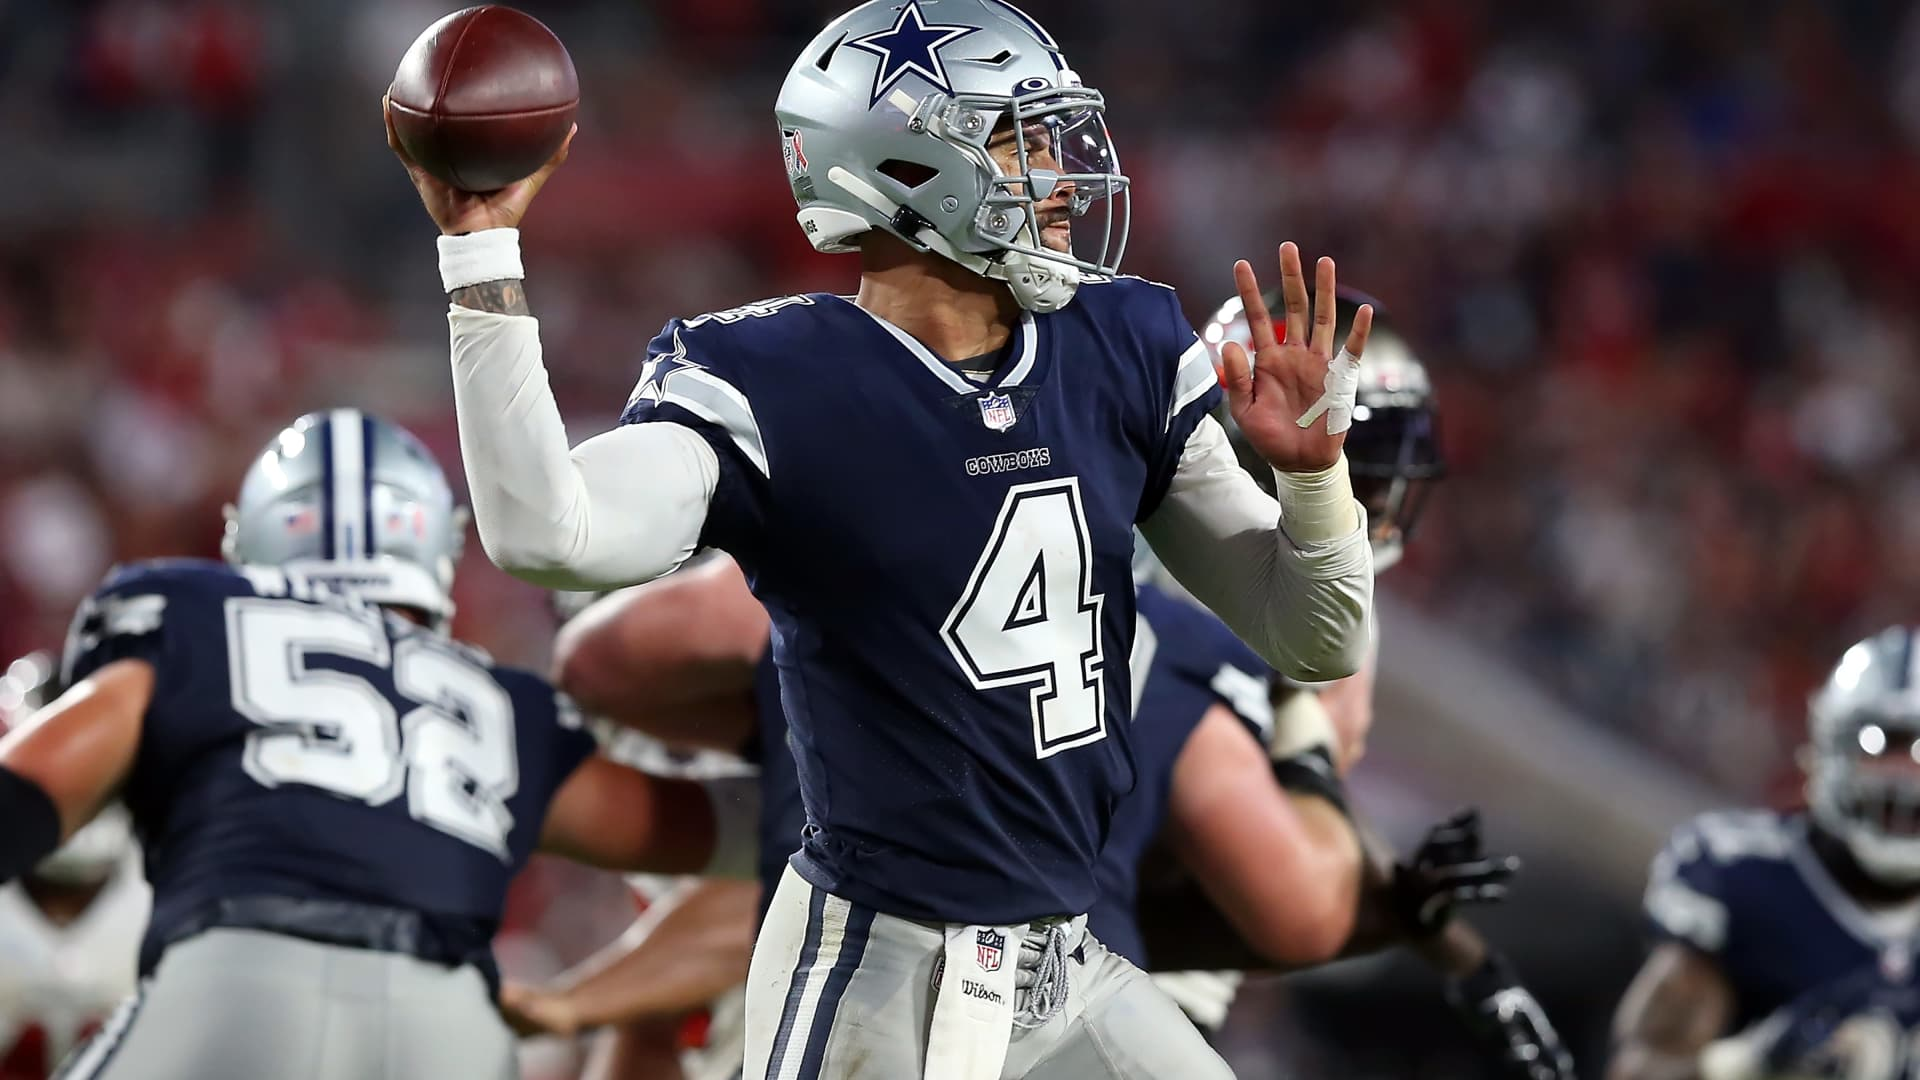 Dallas Cowboys Quarterback Dak Prescott (4) throws a pass during the regular season game between the Dallas Cowboys and the Tampa Bay Buccaneers on September 09, 2021 at Raymond James Stadium in Tampa, Florida.